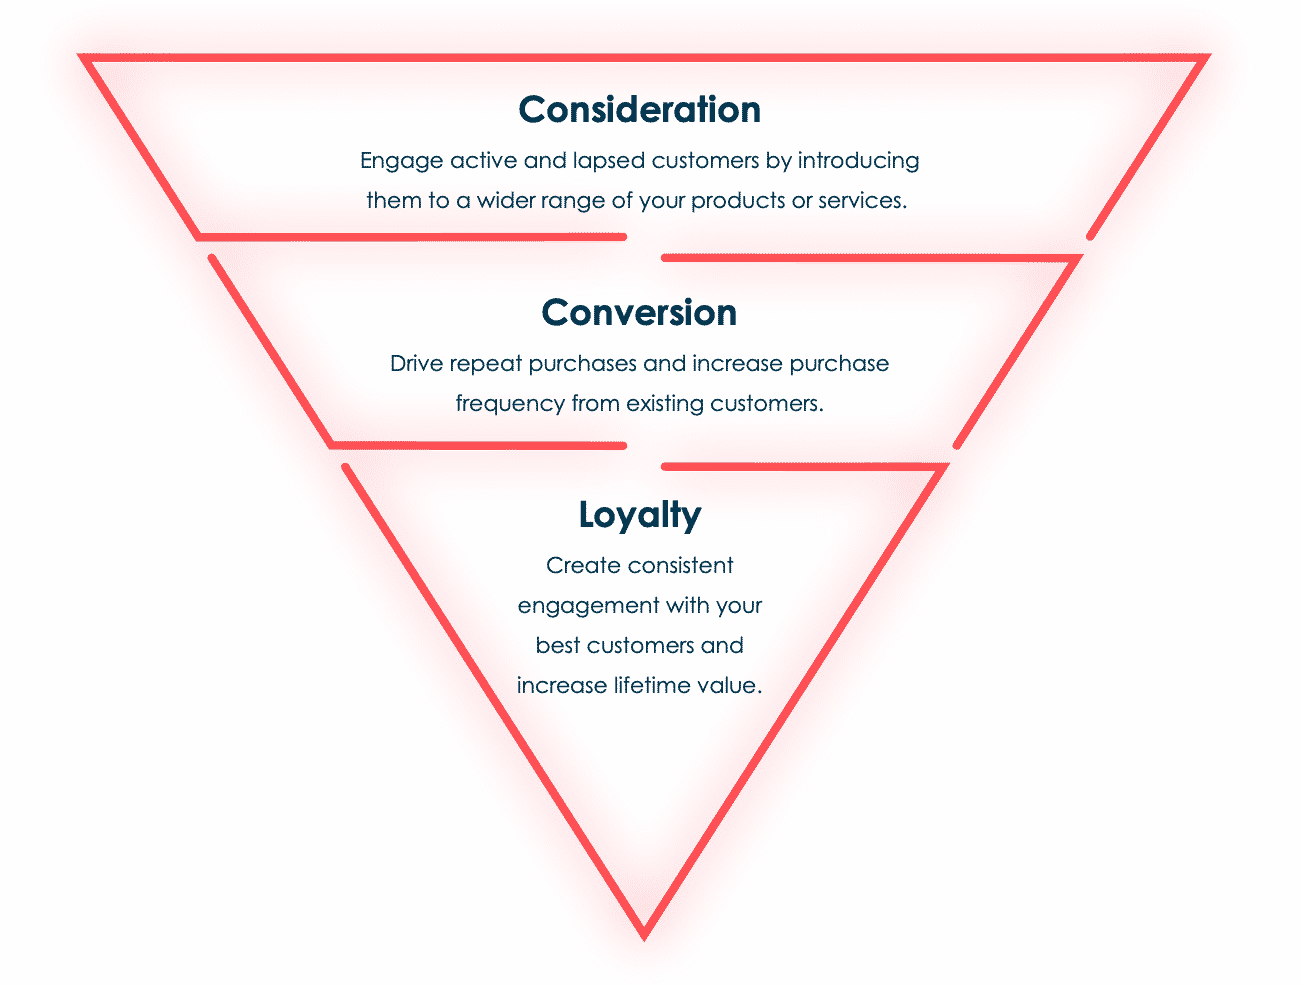 Purchase funnel going from consideration to conversion to loyalty.